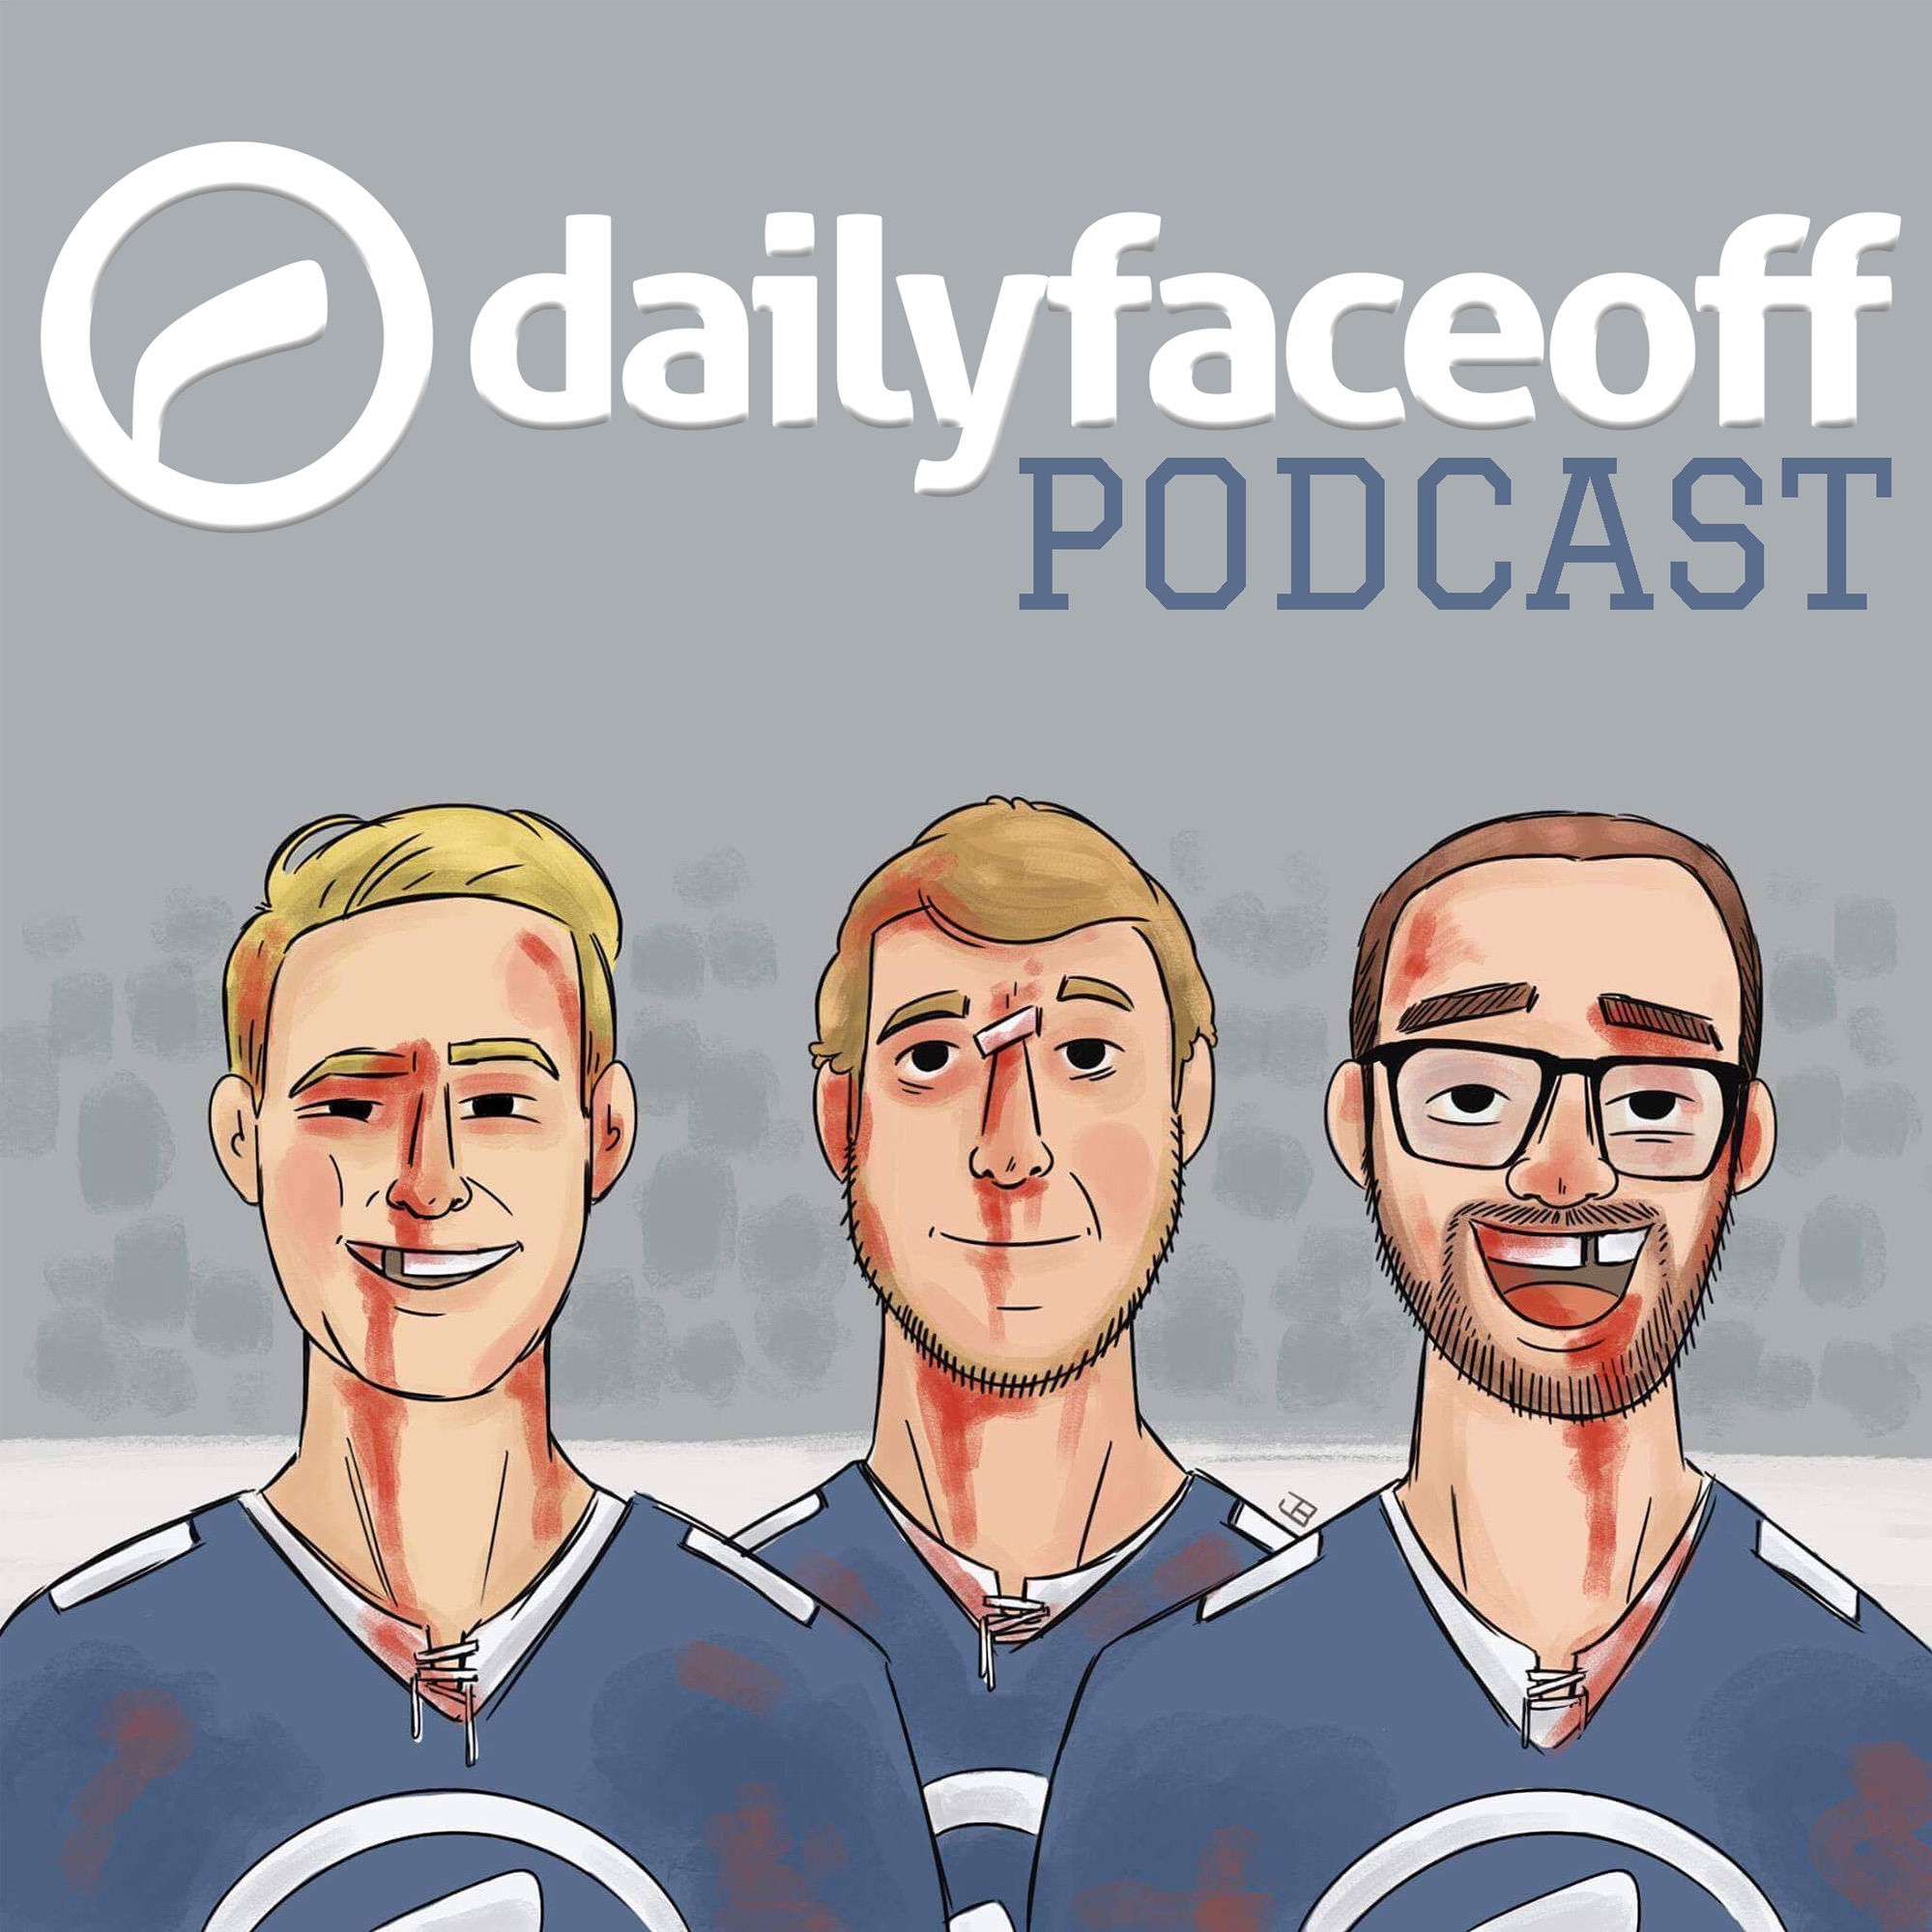 DailyFaceoff Podcast